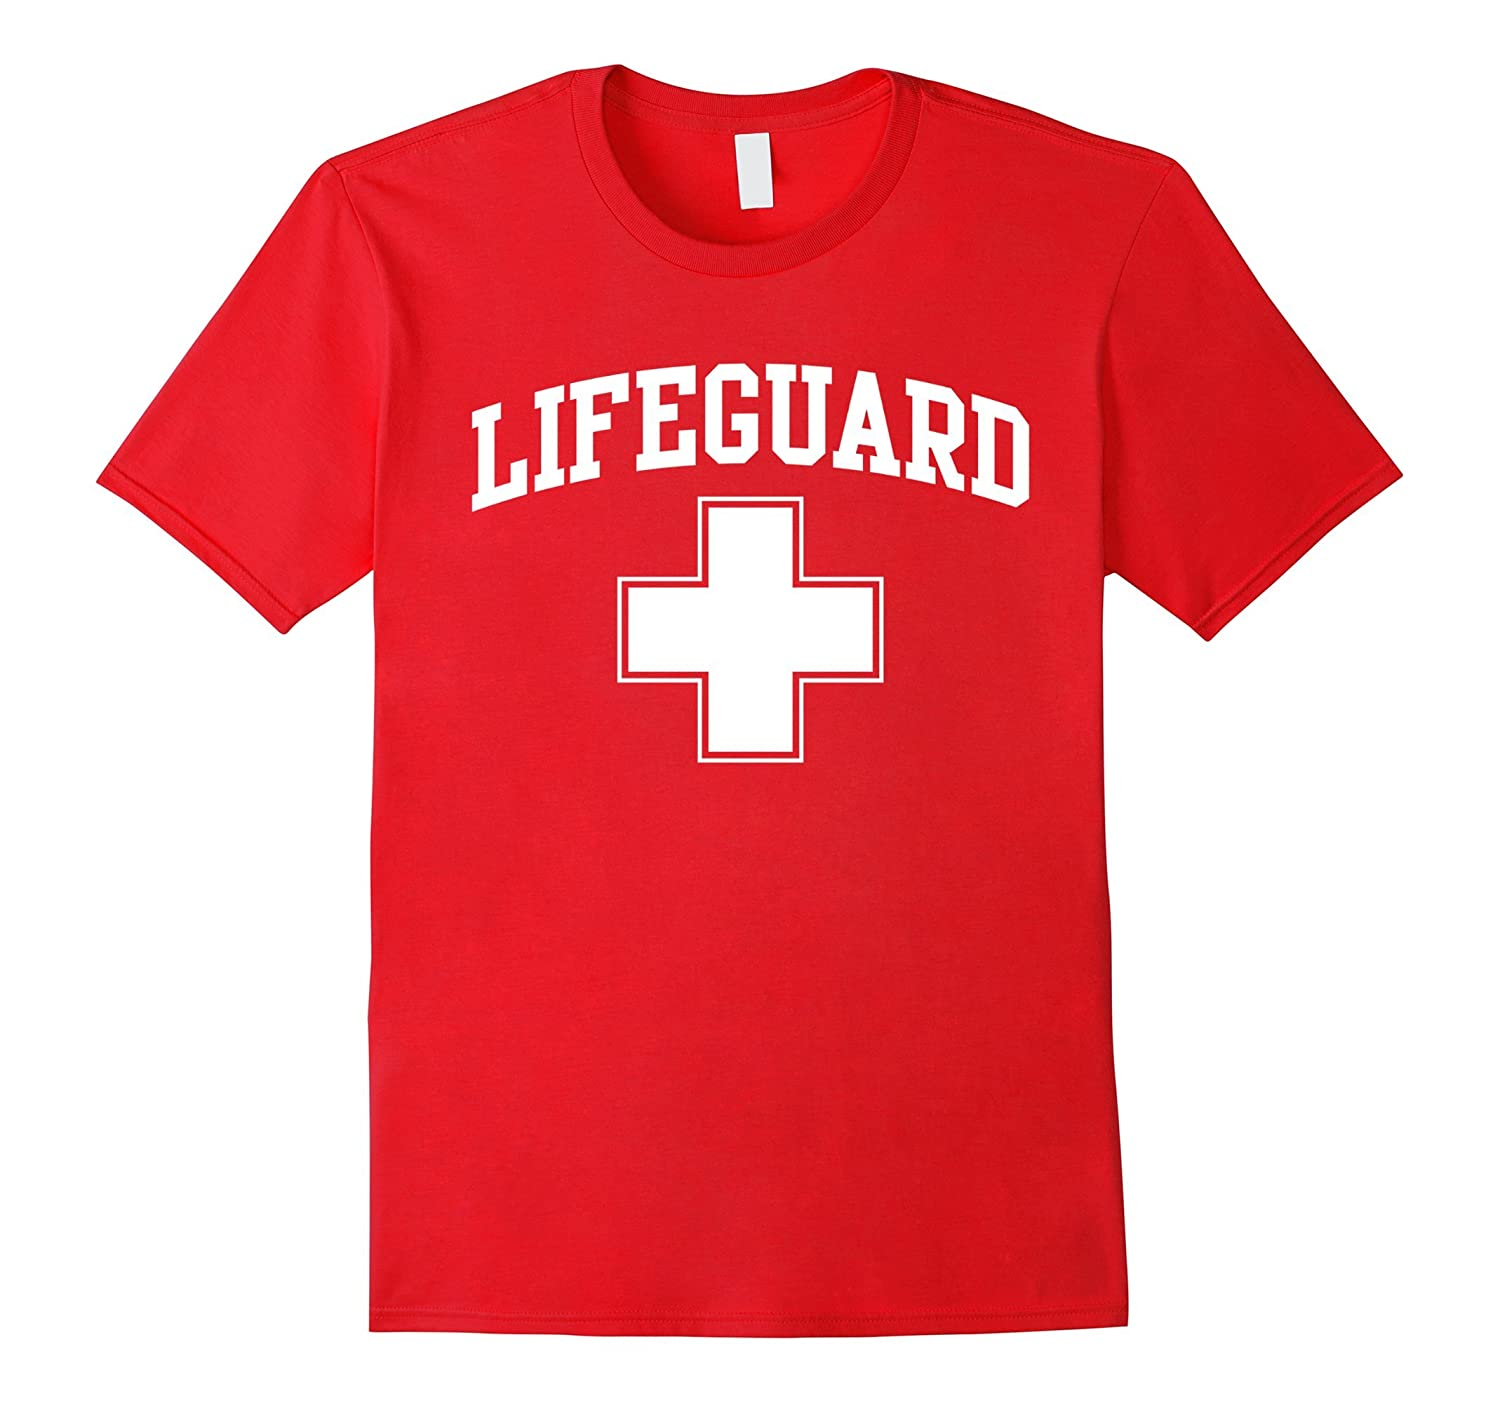 Lifeguard Short Sleeve Red T-Shirt-CD